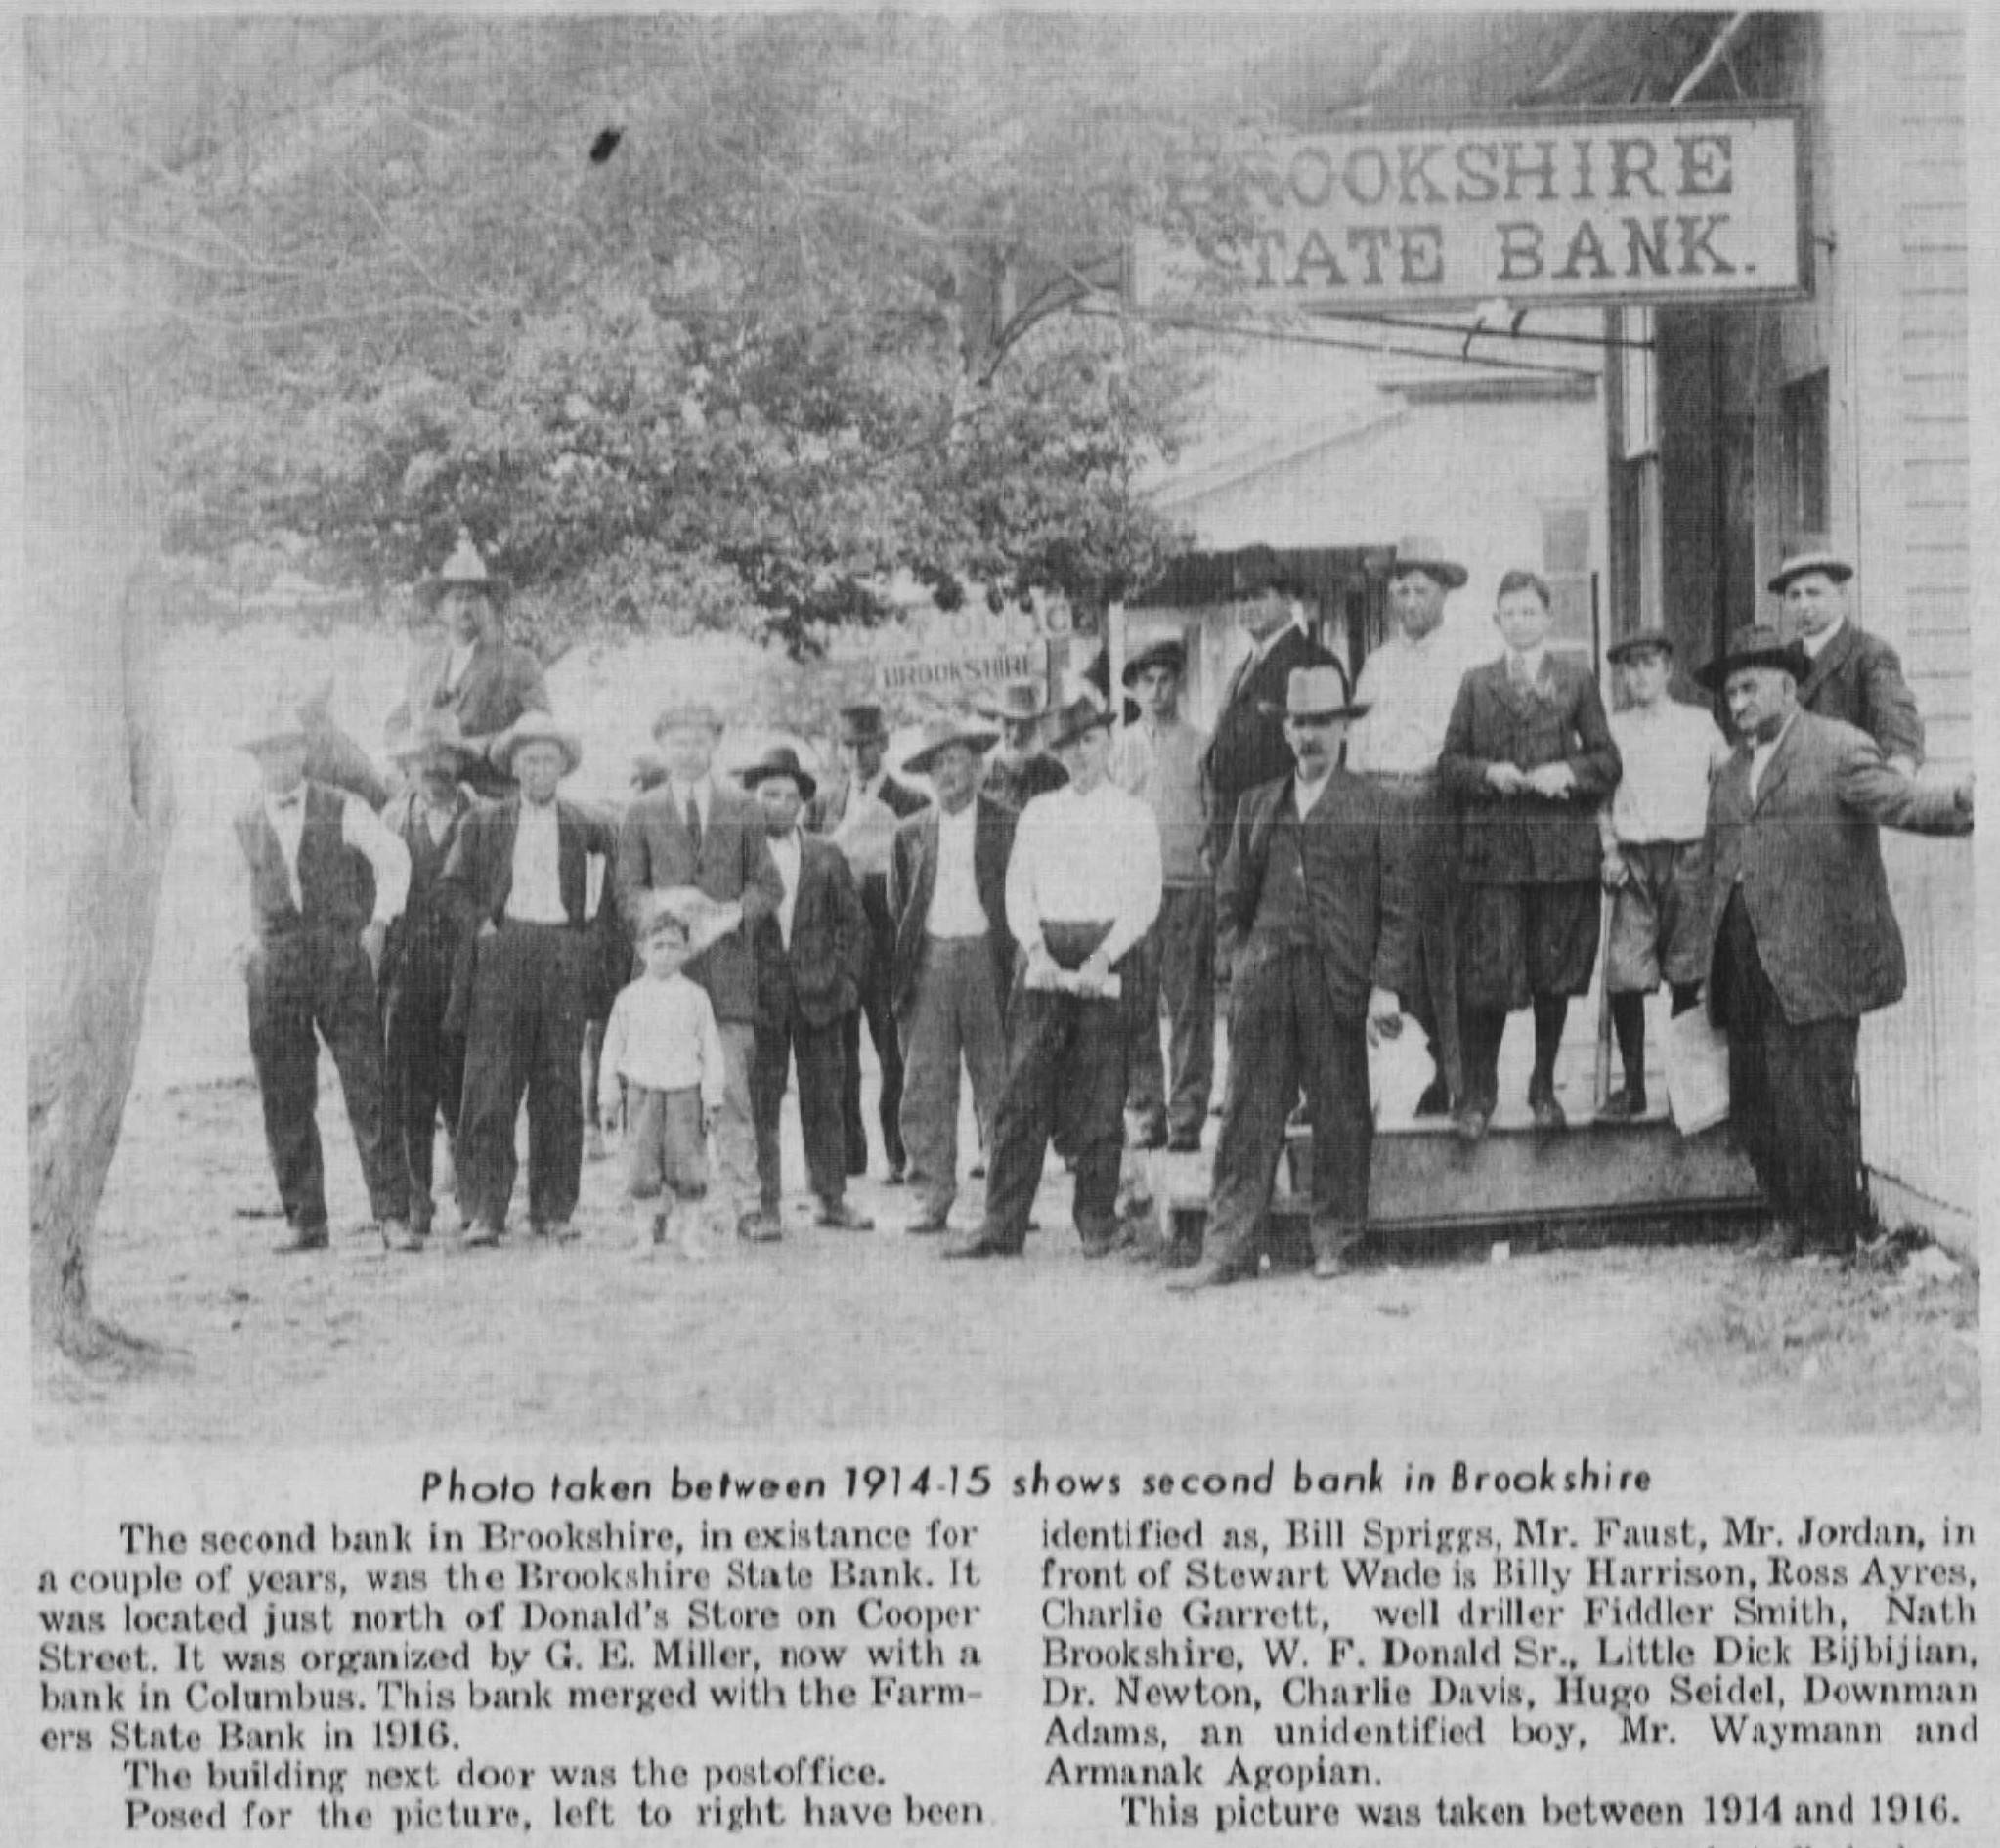 Second Bank of Brookshire 1914-1915